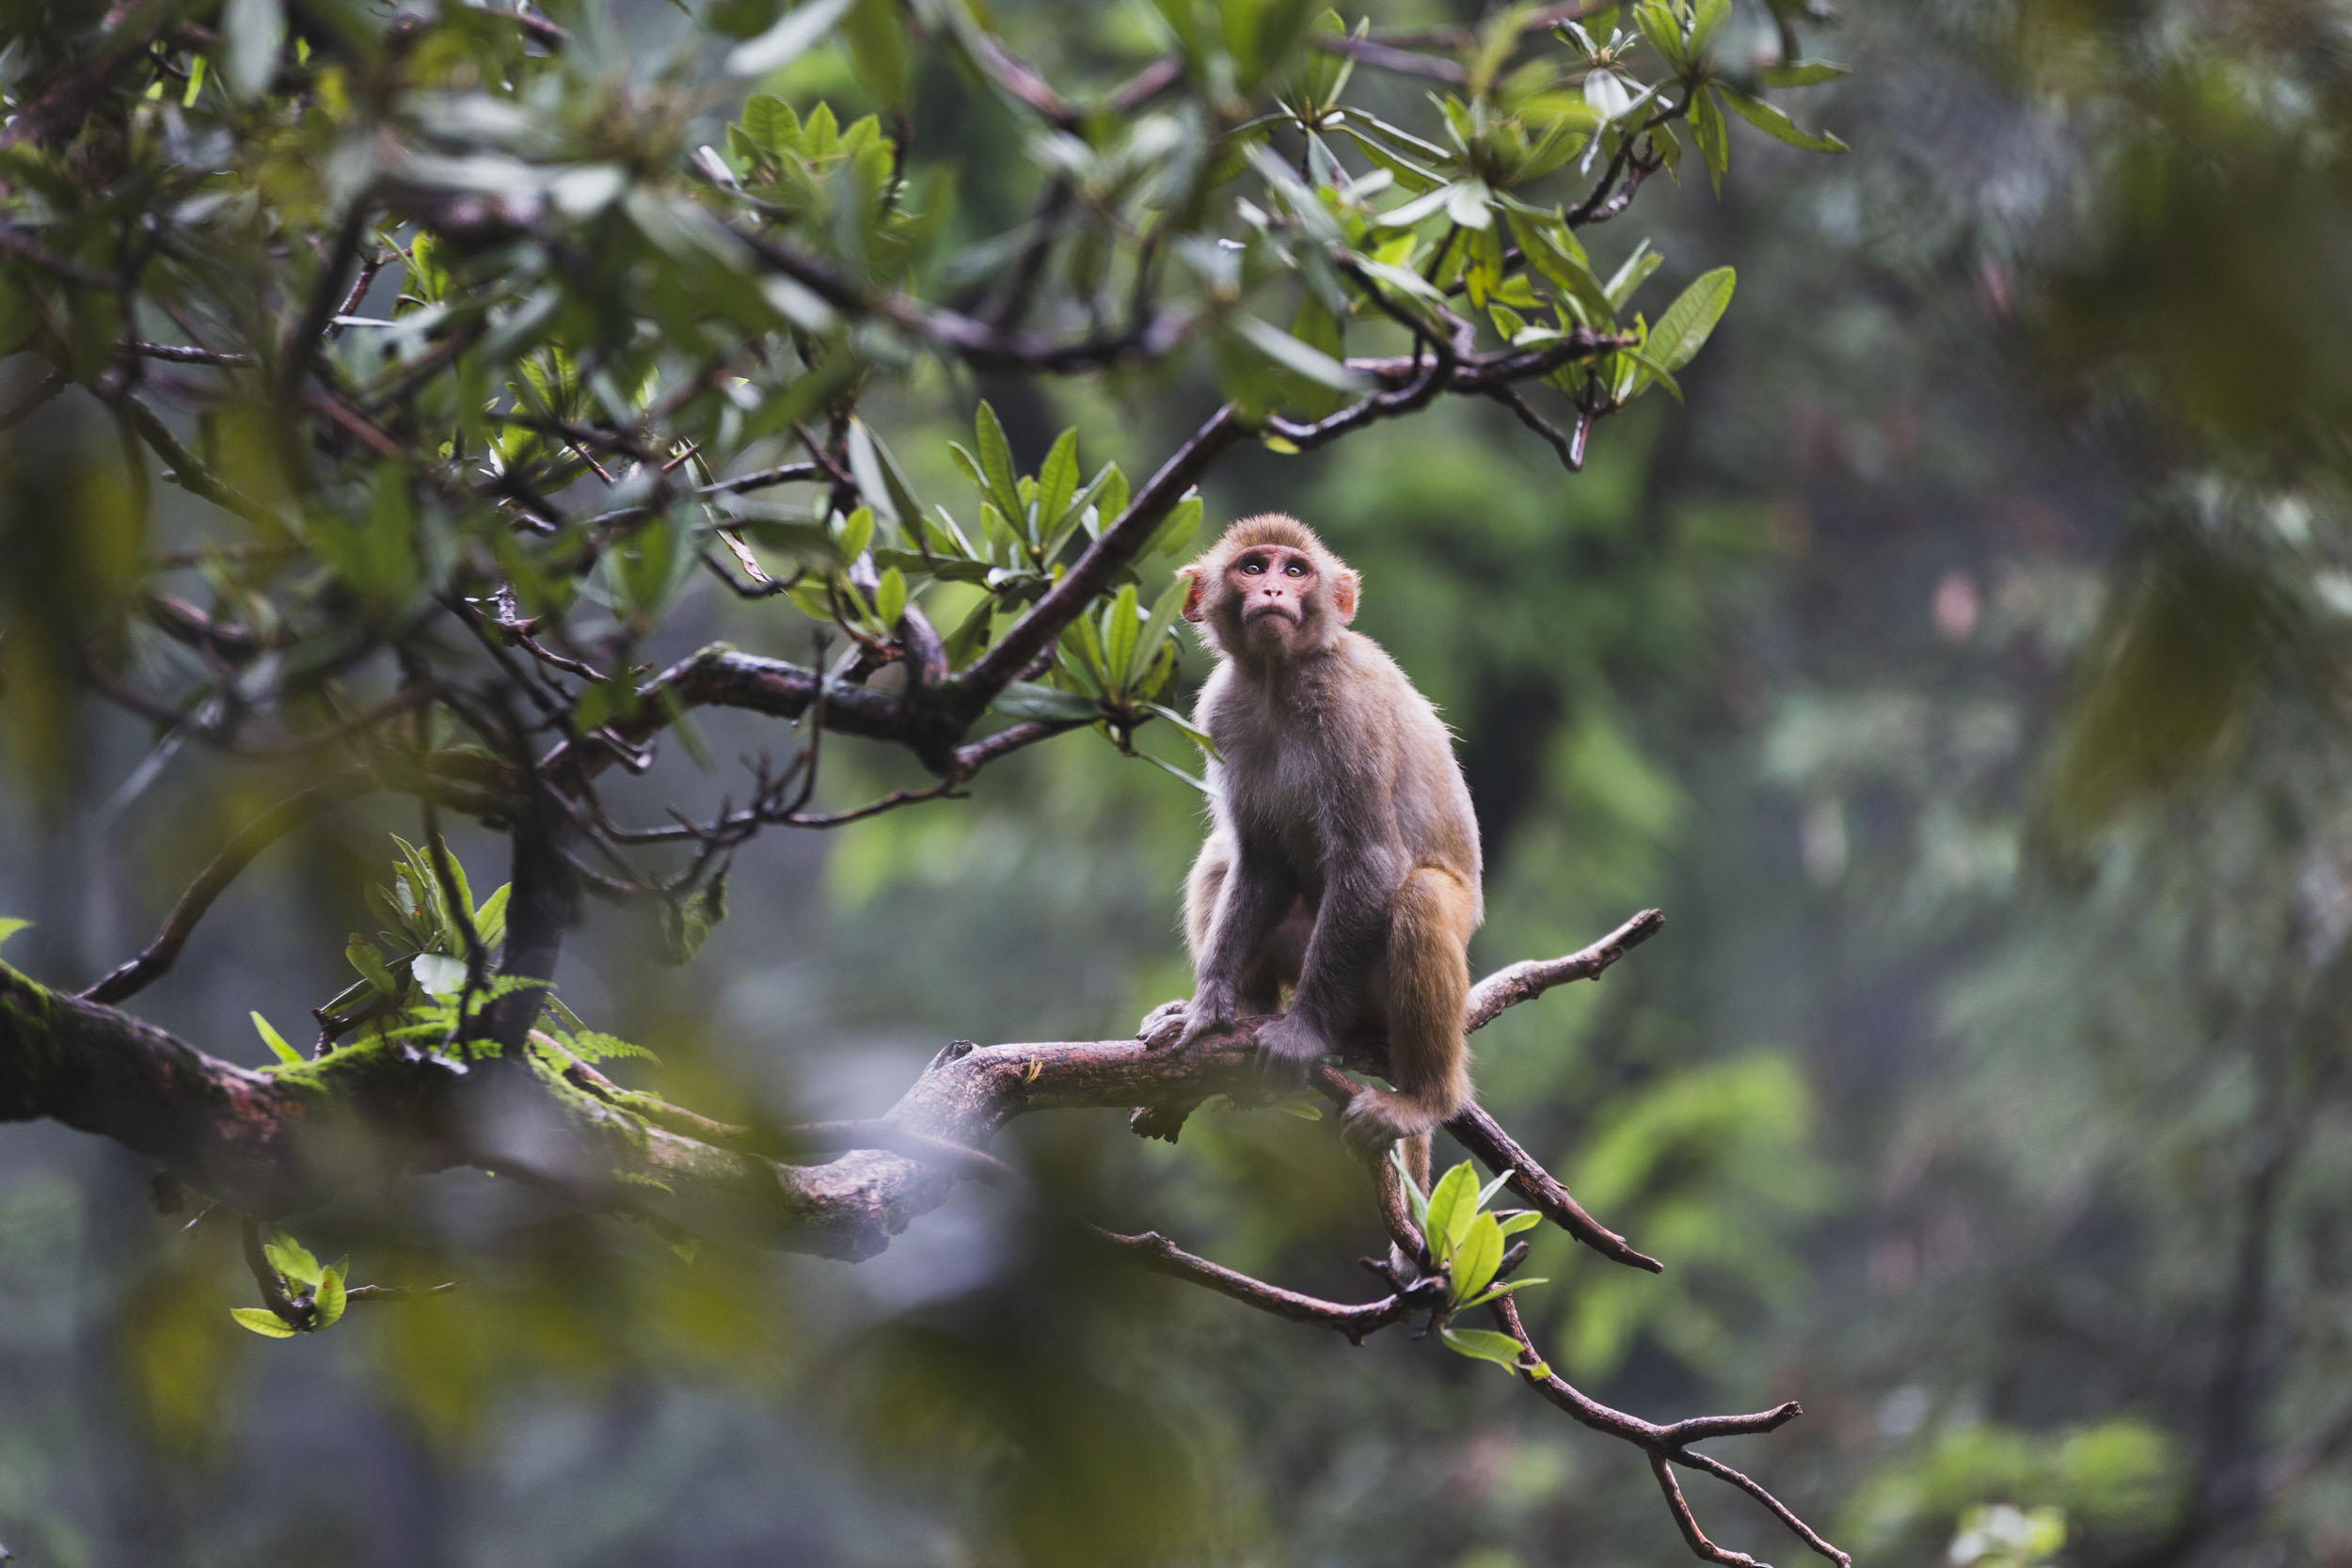 Misty Monkey in Forrest on Tree